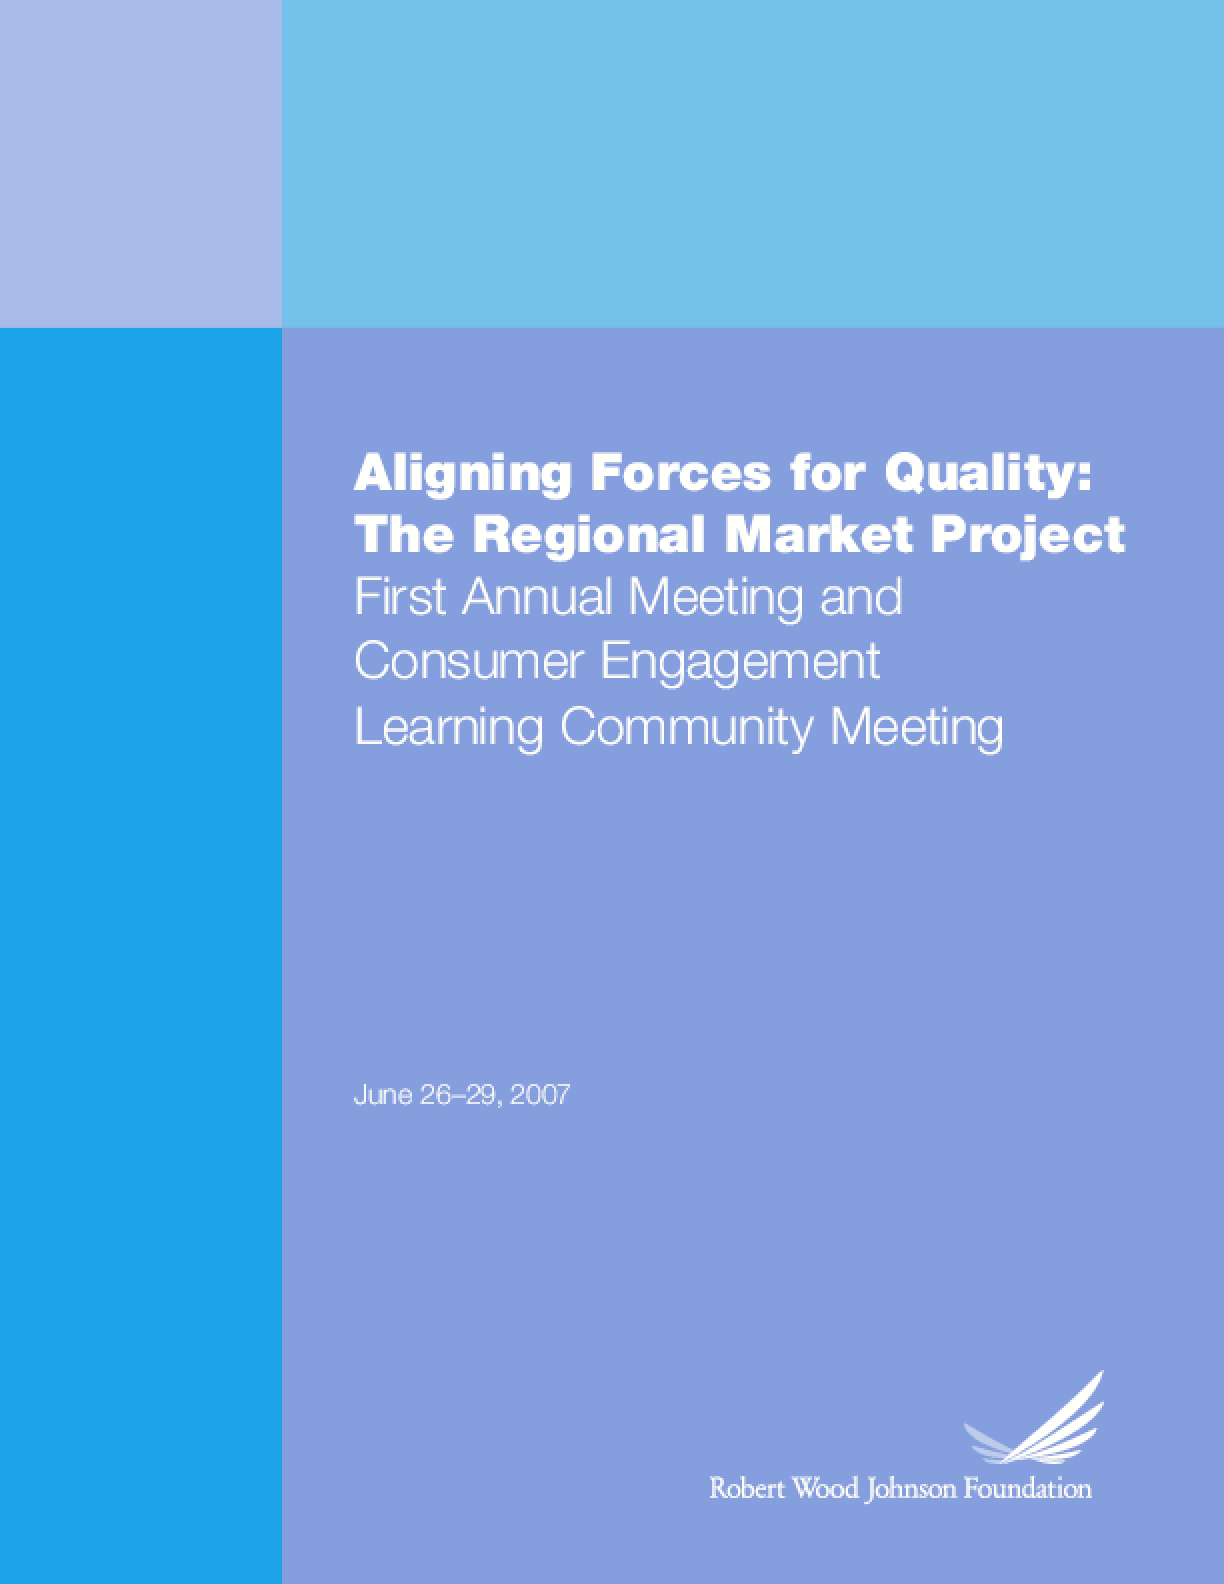 Aligning Forces for Quality First Annual Meeting and Consumer Engagement Learning Community Meeting